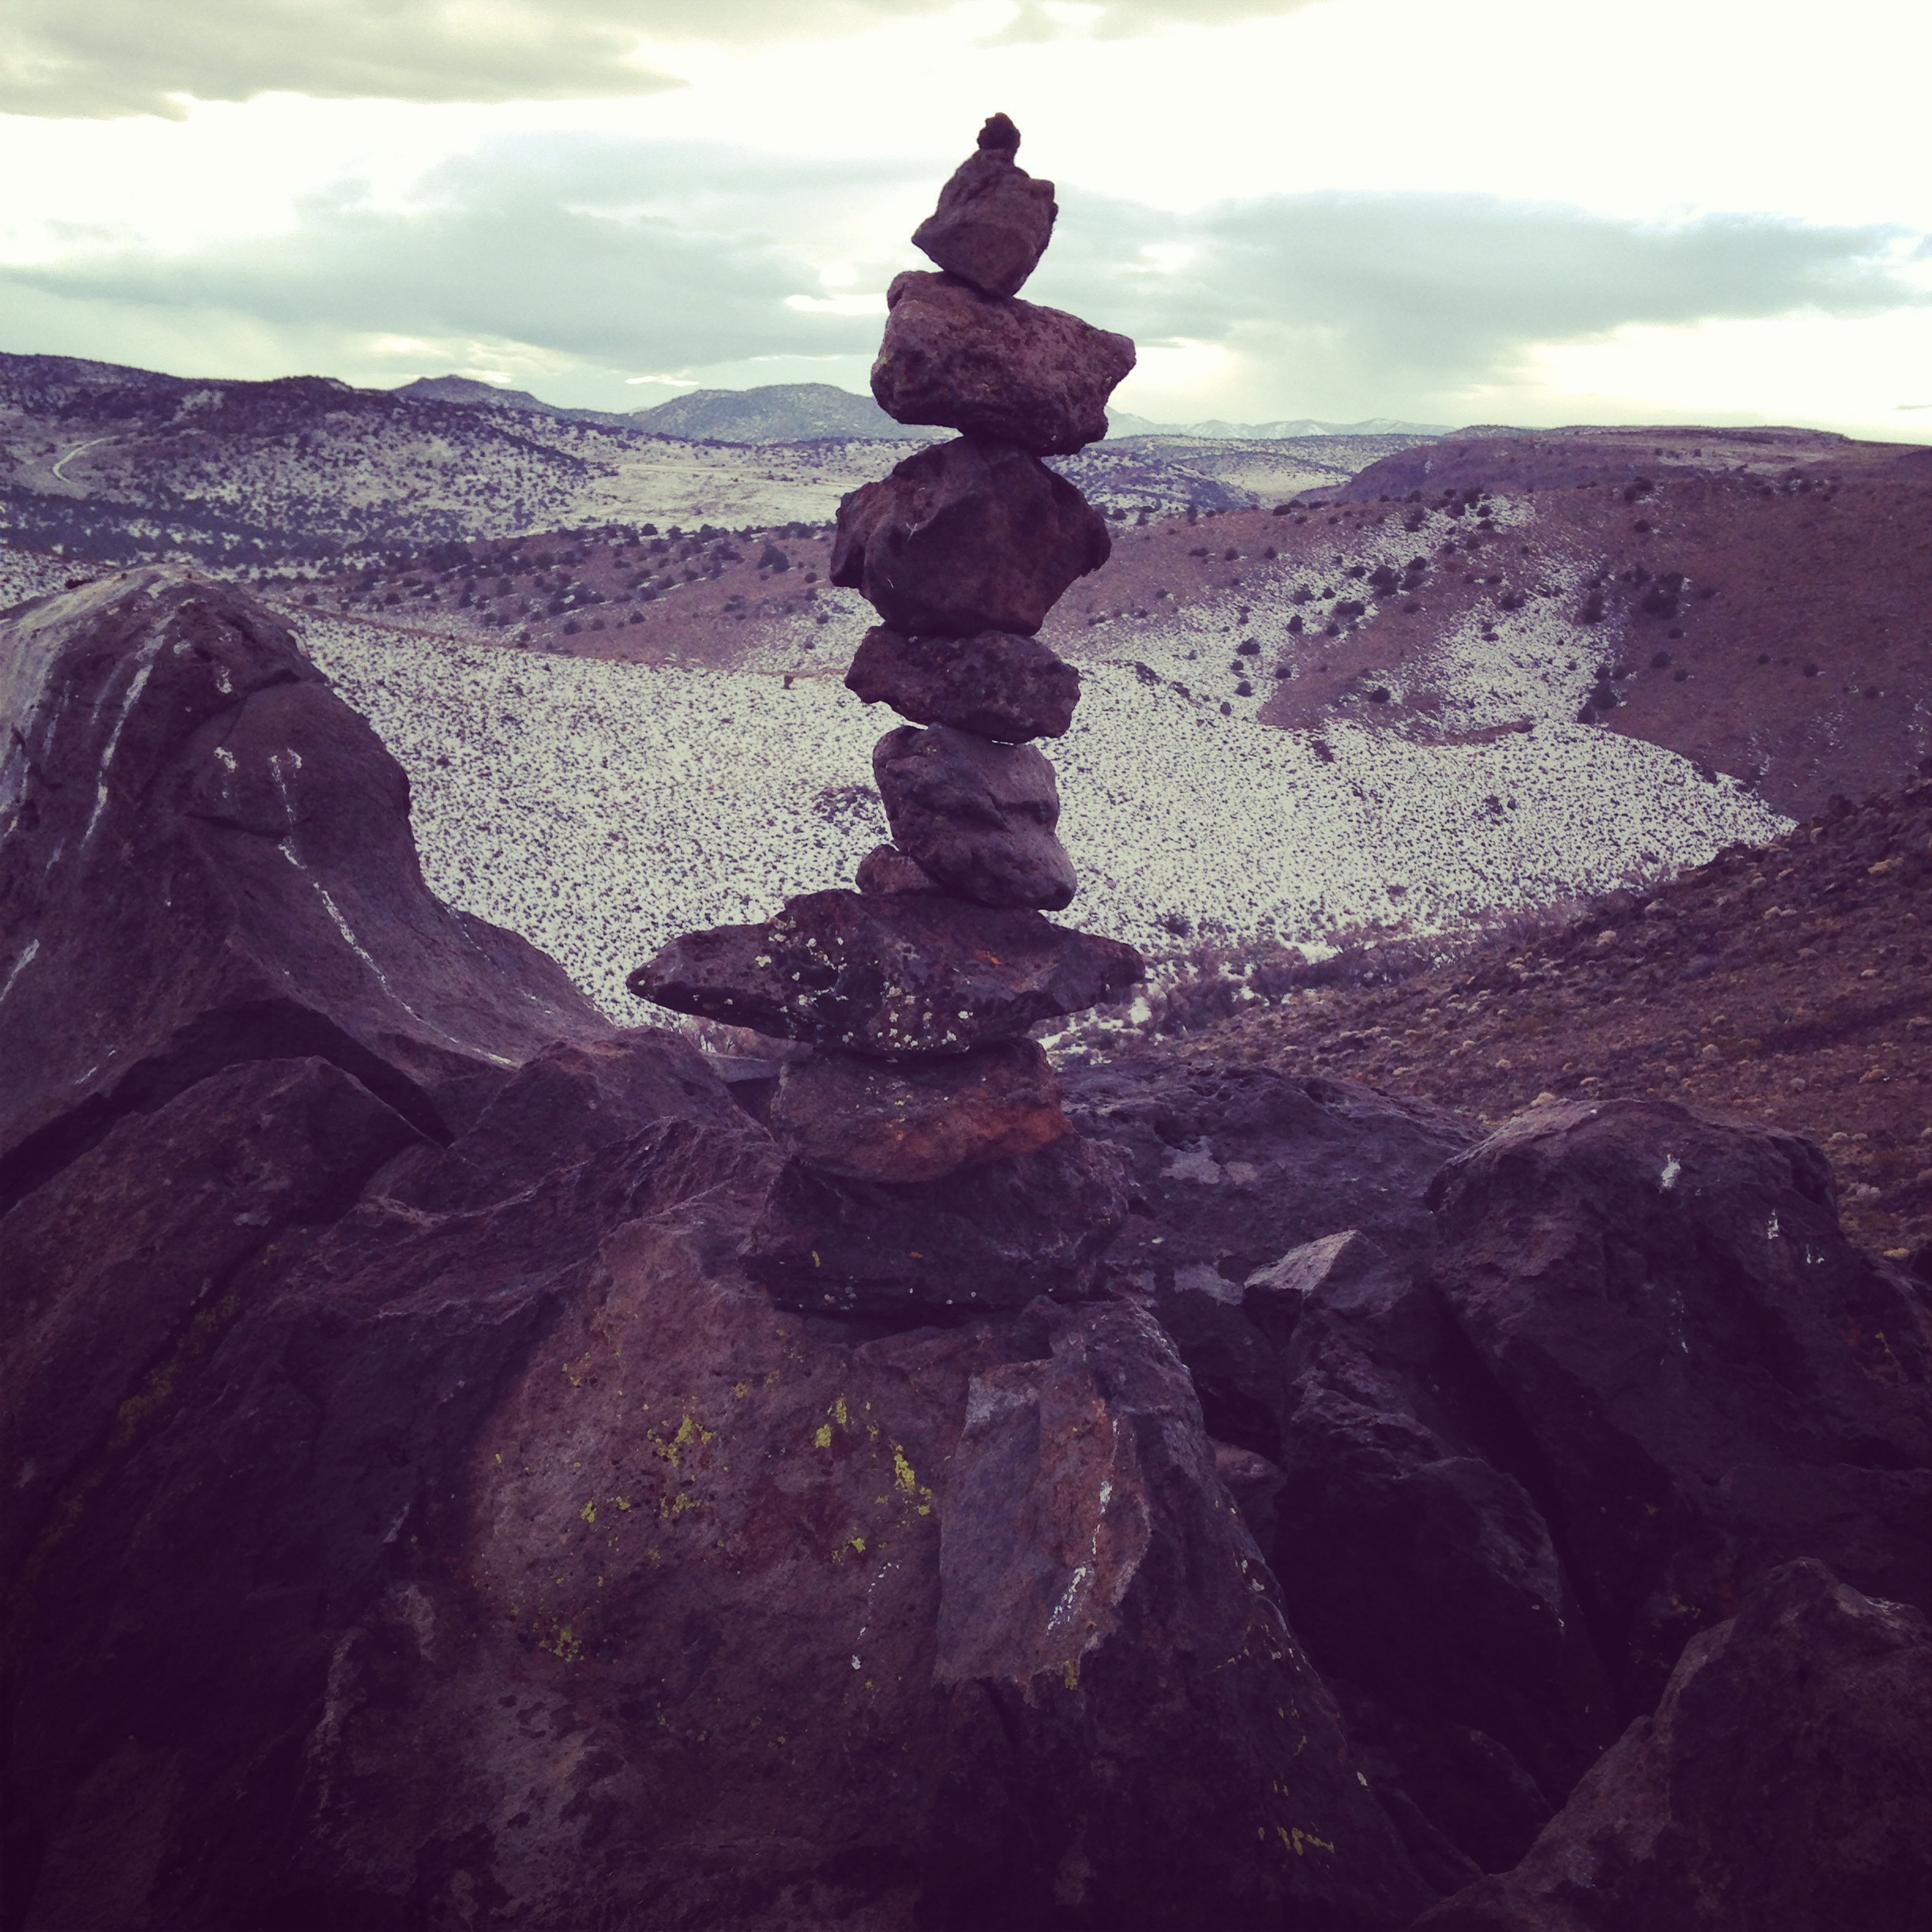 Built my first cairn with Dean at the top.